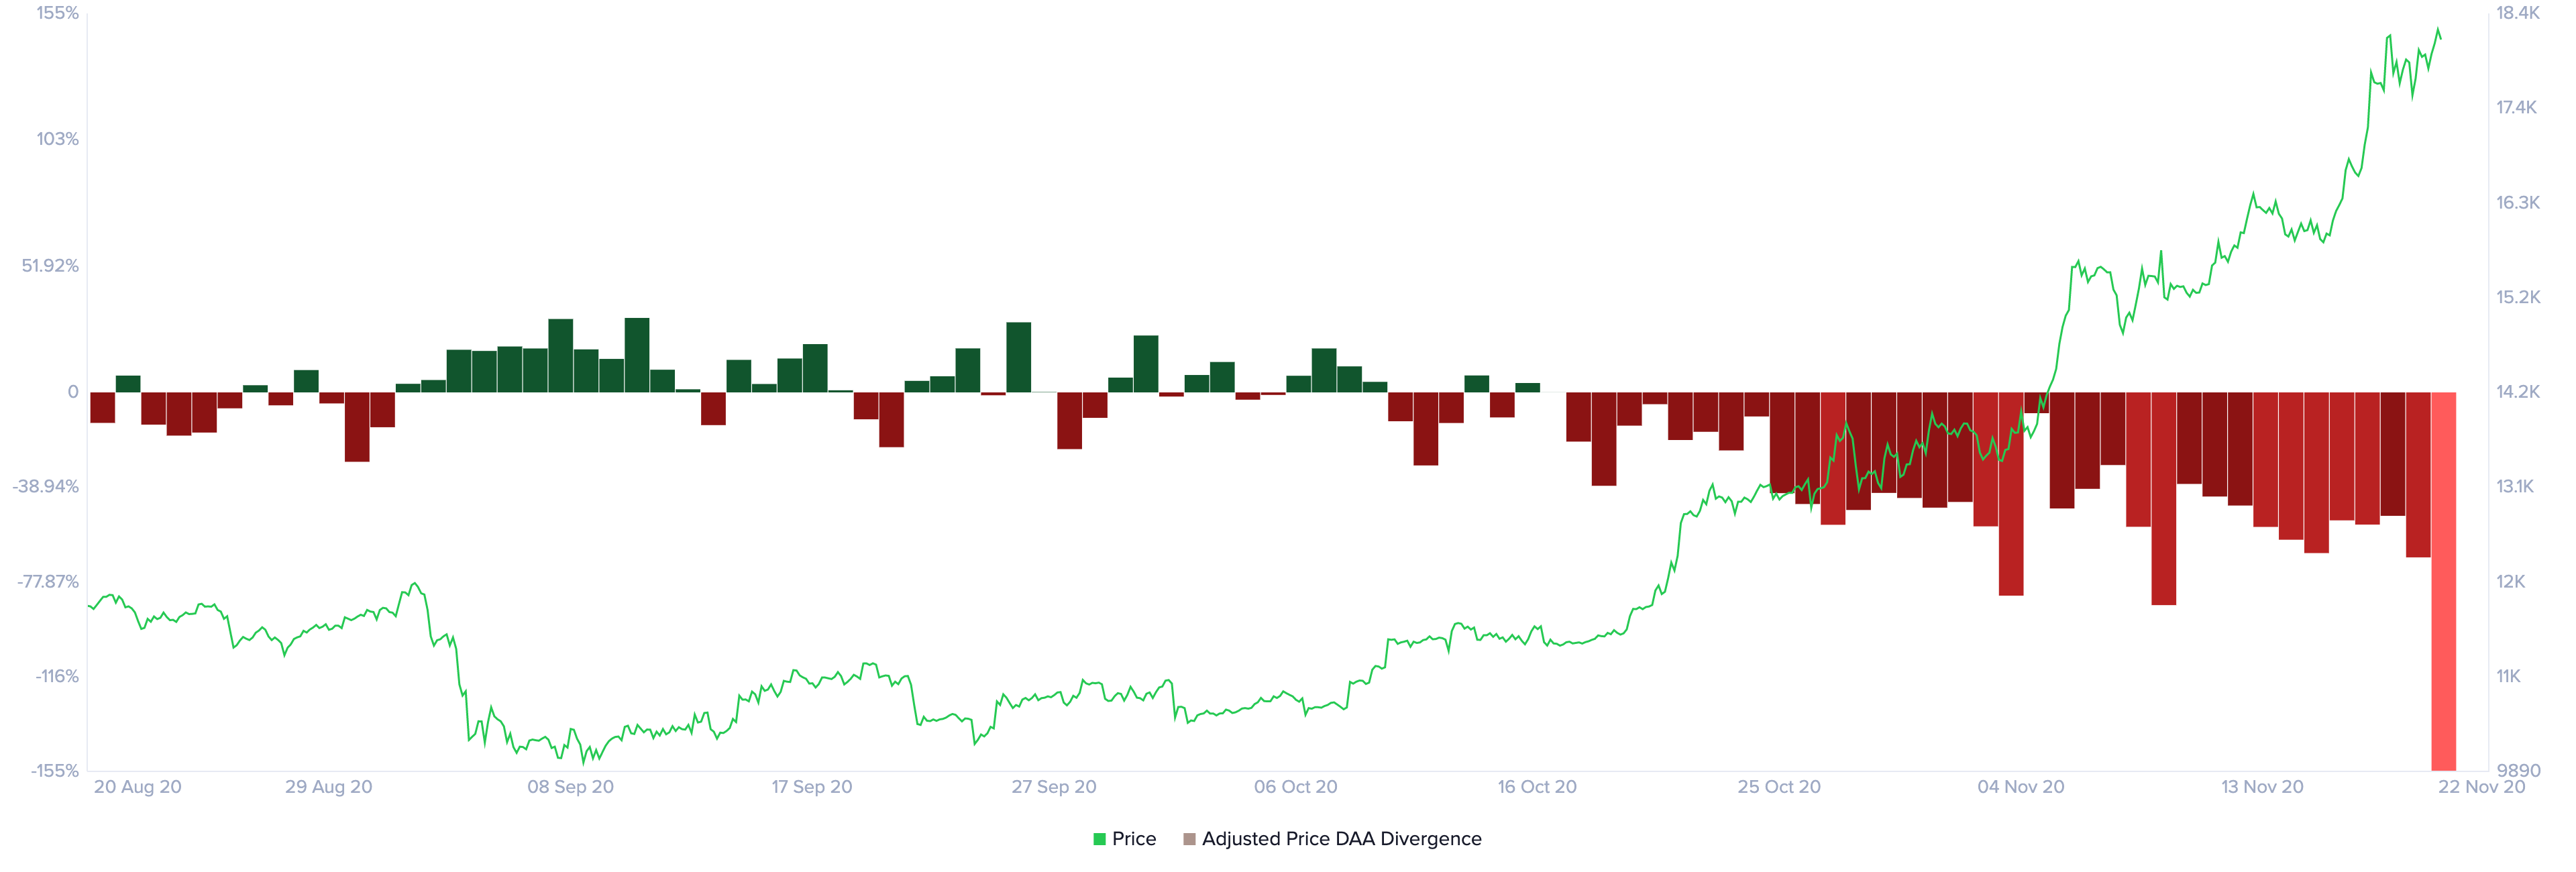 Daily Active Addresses vs. Price Divergence